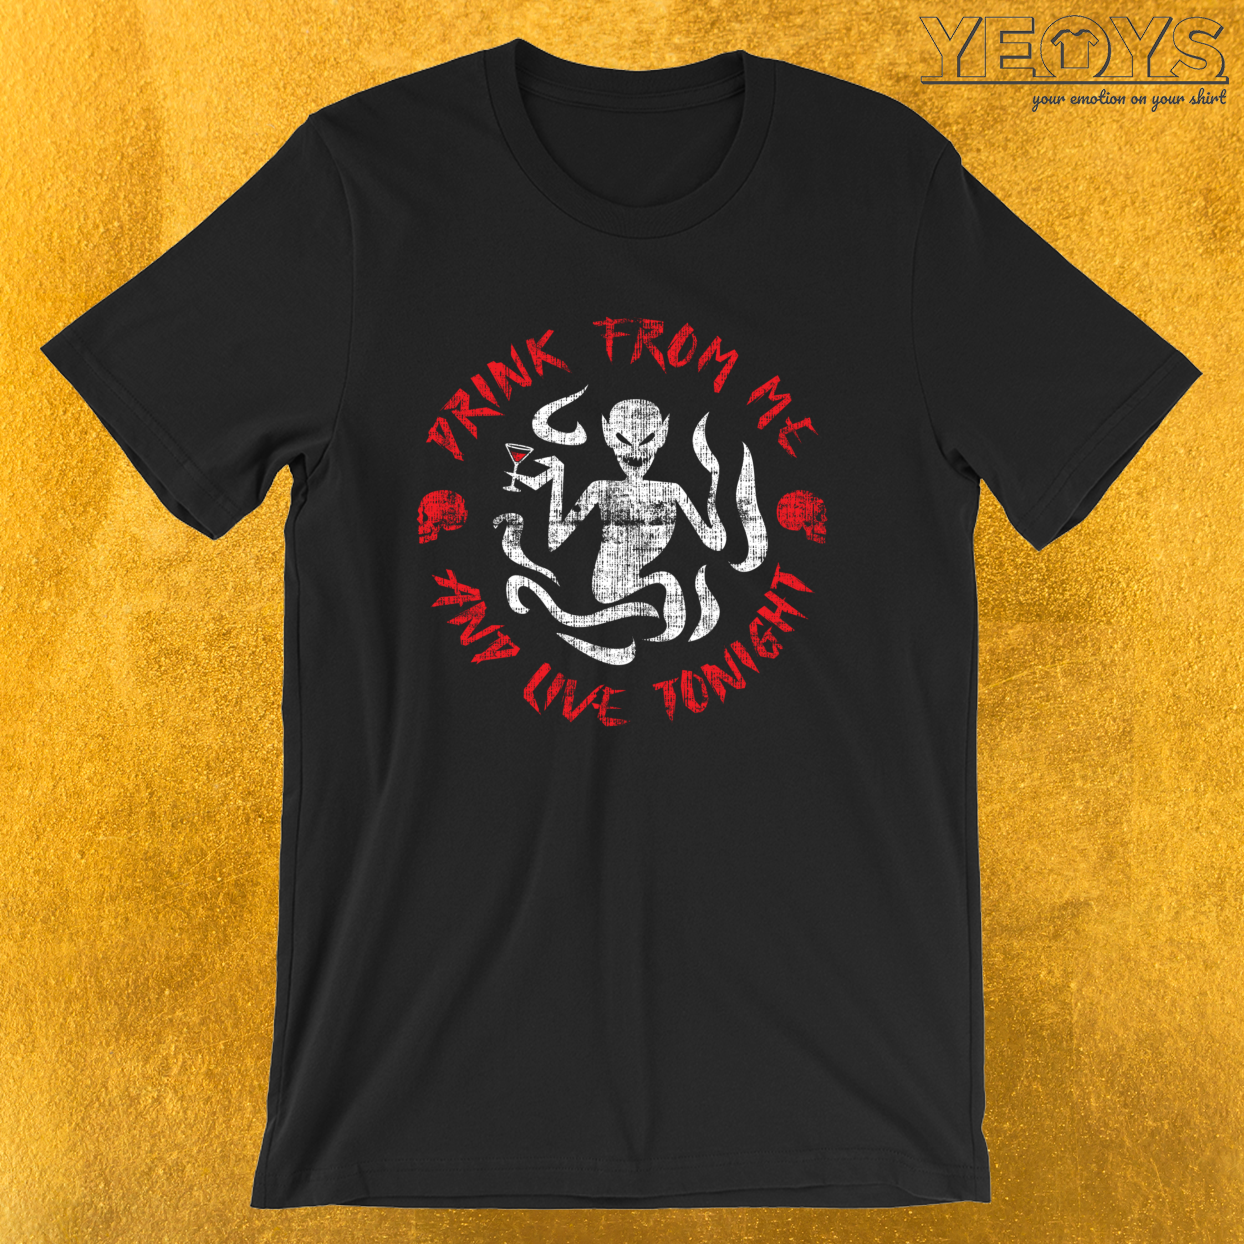 Drink From Me And Live Tonight – Funny Horror Movie Tee